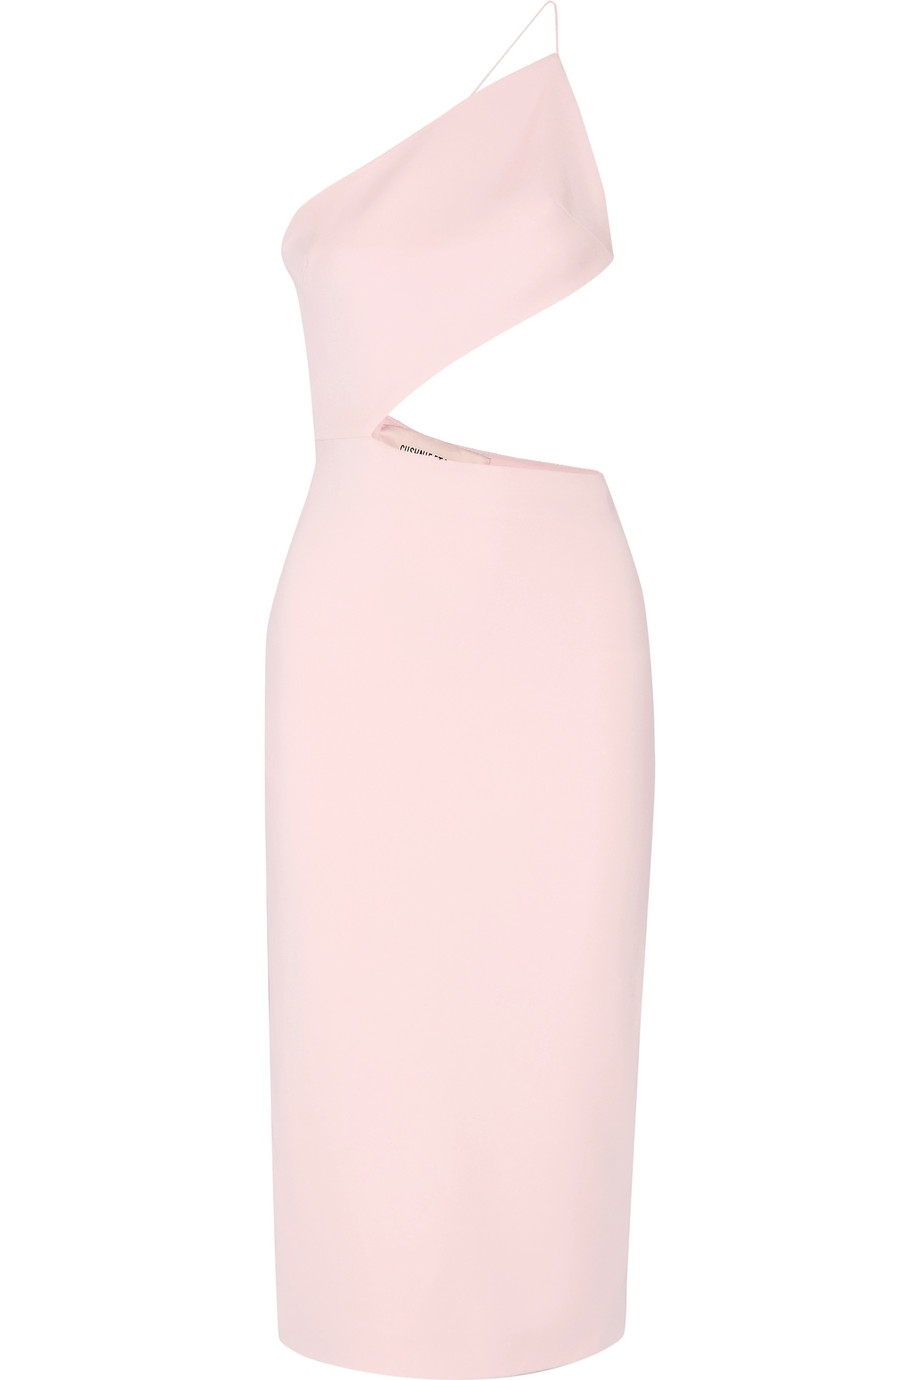 CUSHNIE ET OCHS 'CINDY' CUTOUT DRESS